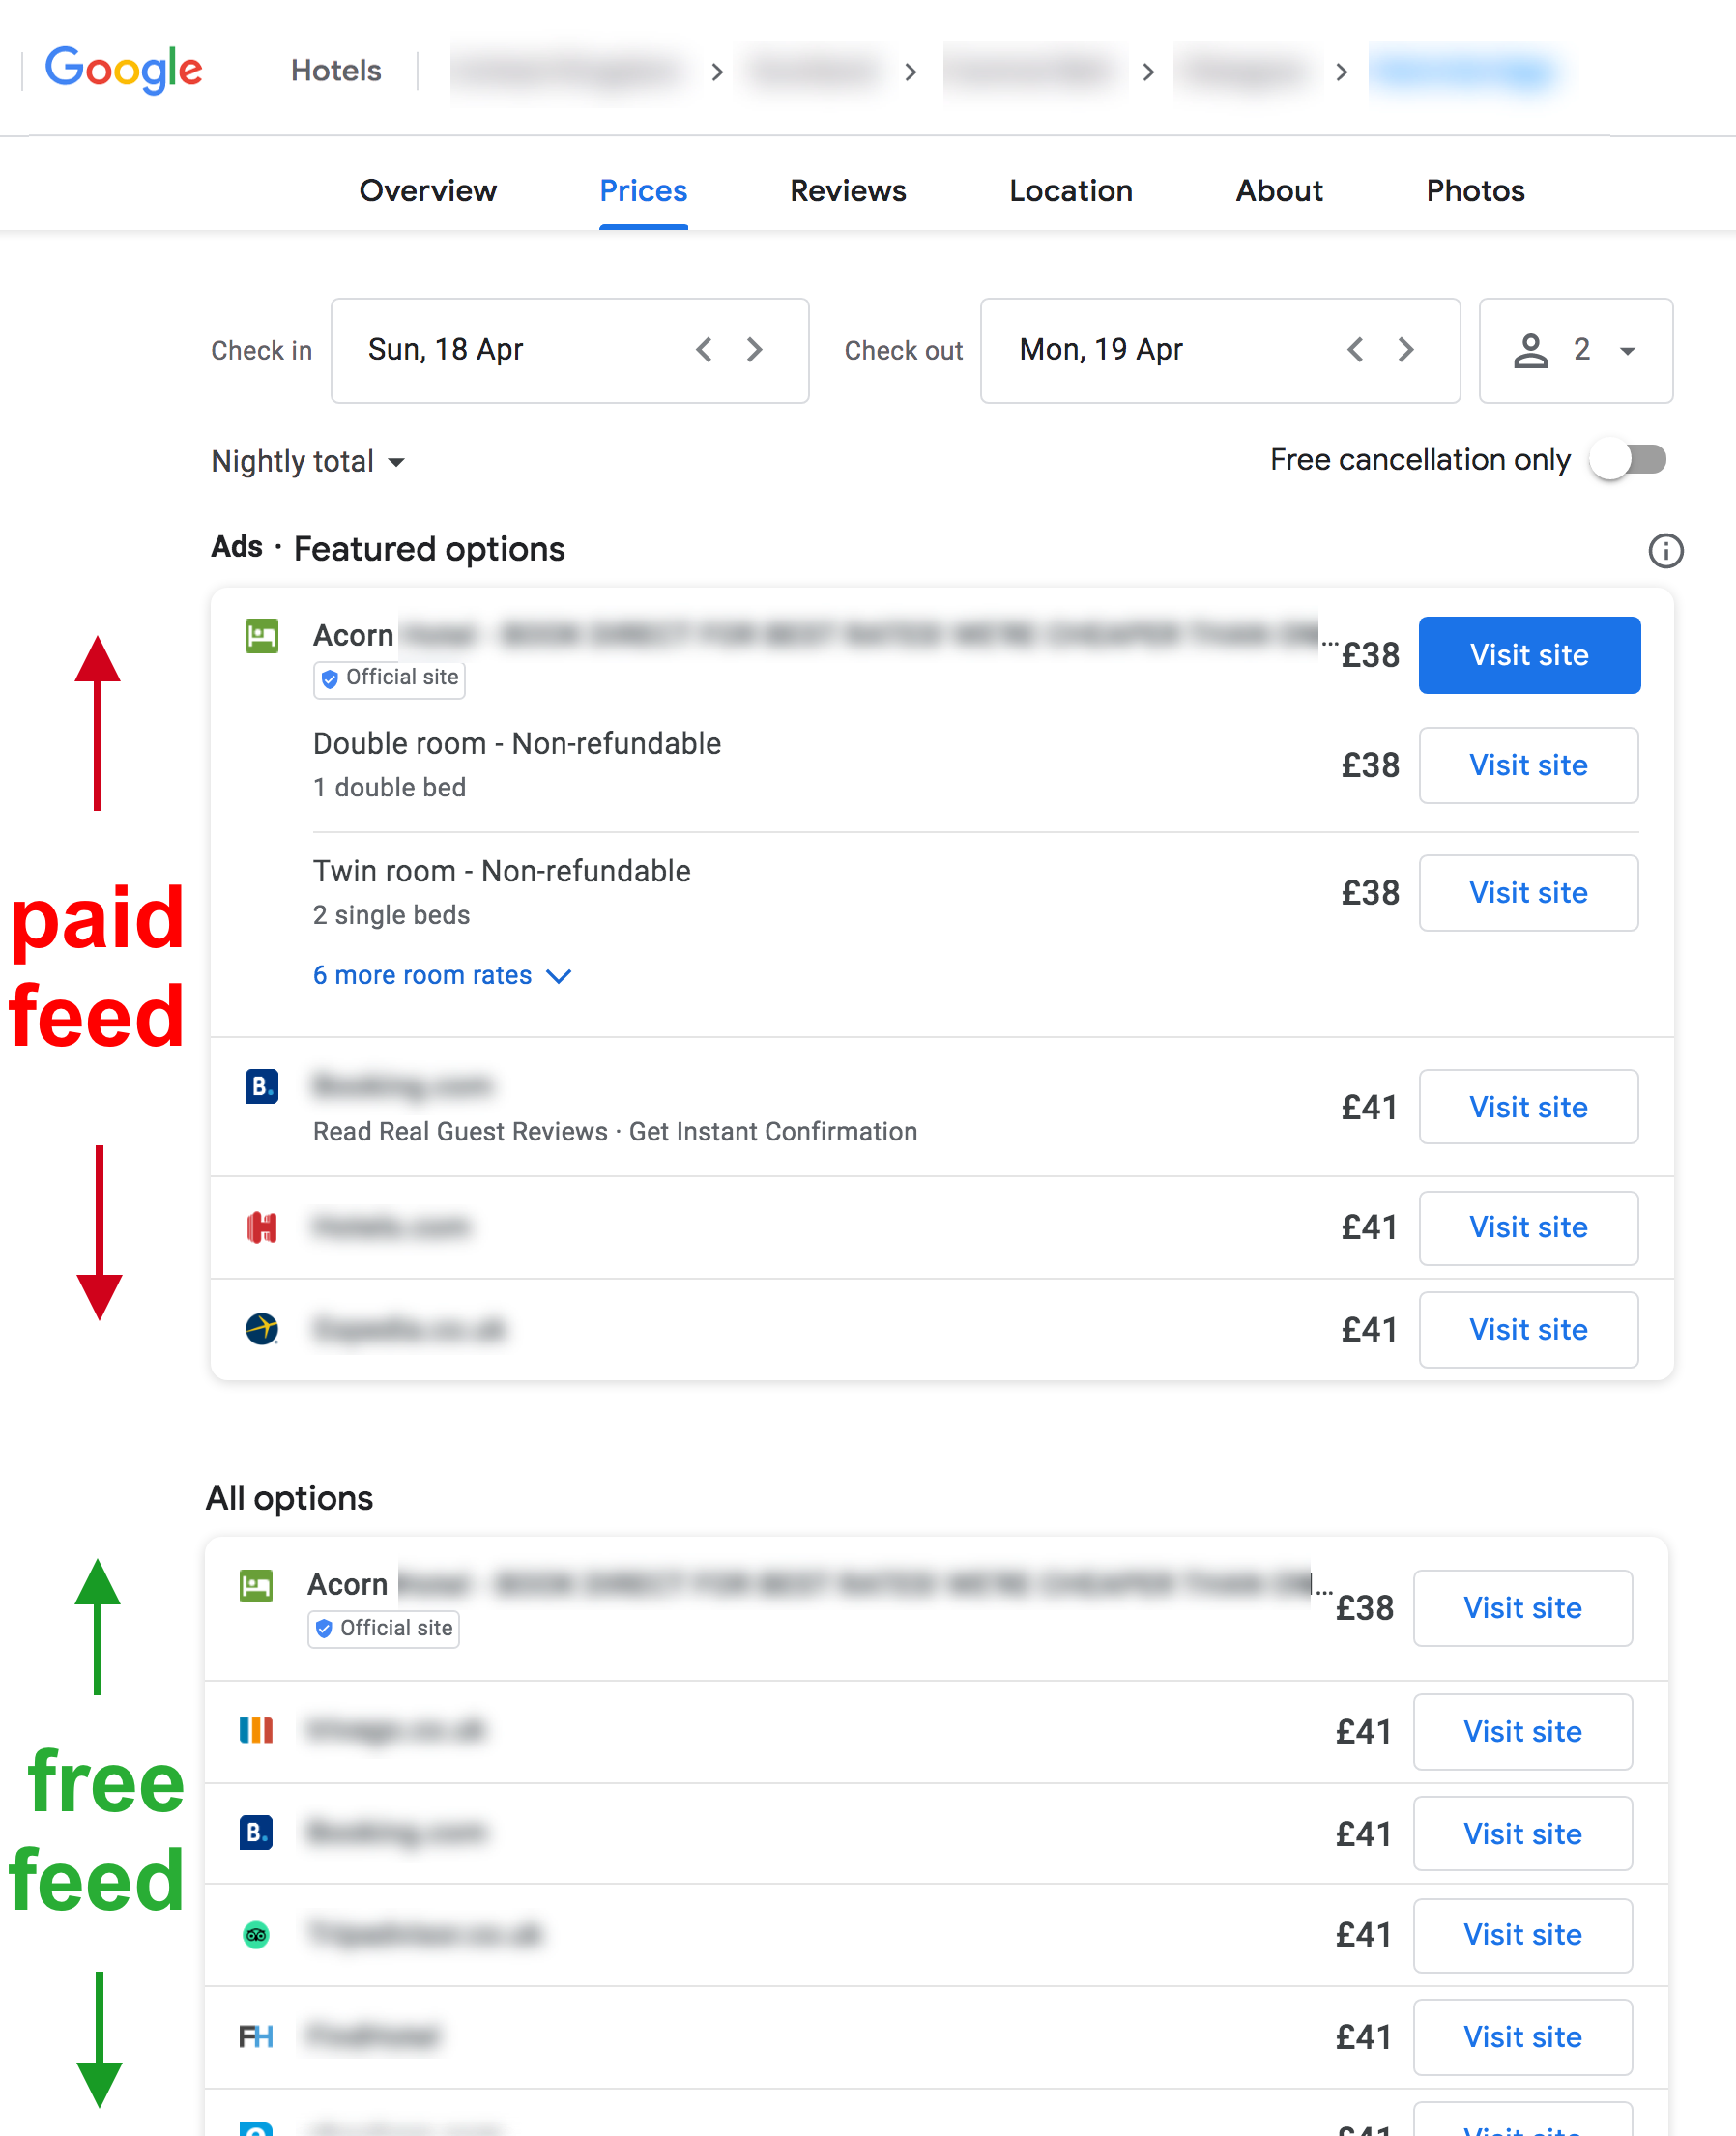 Google free and paid Hotel Ads feeds